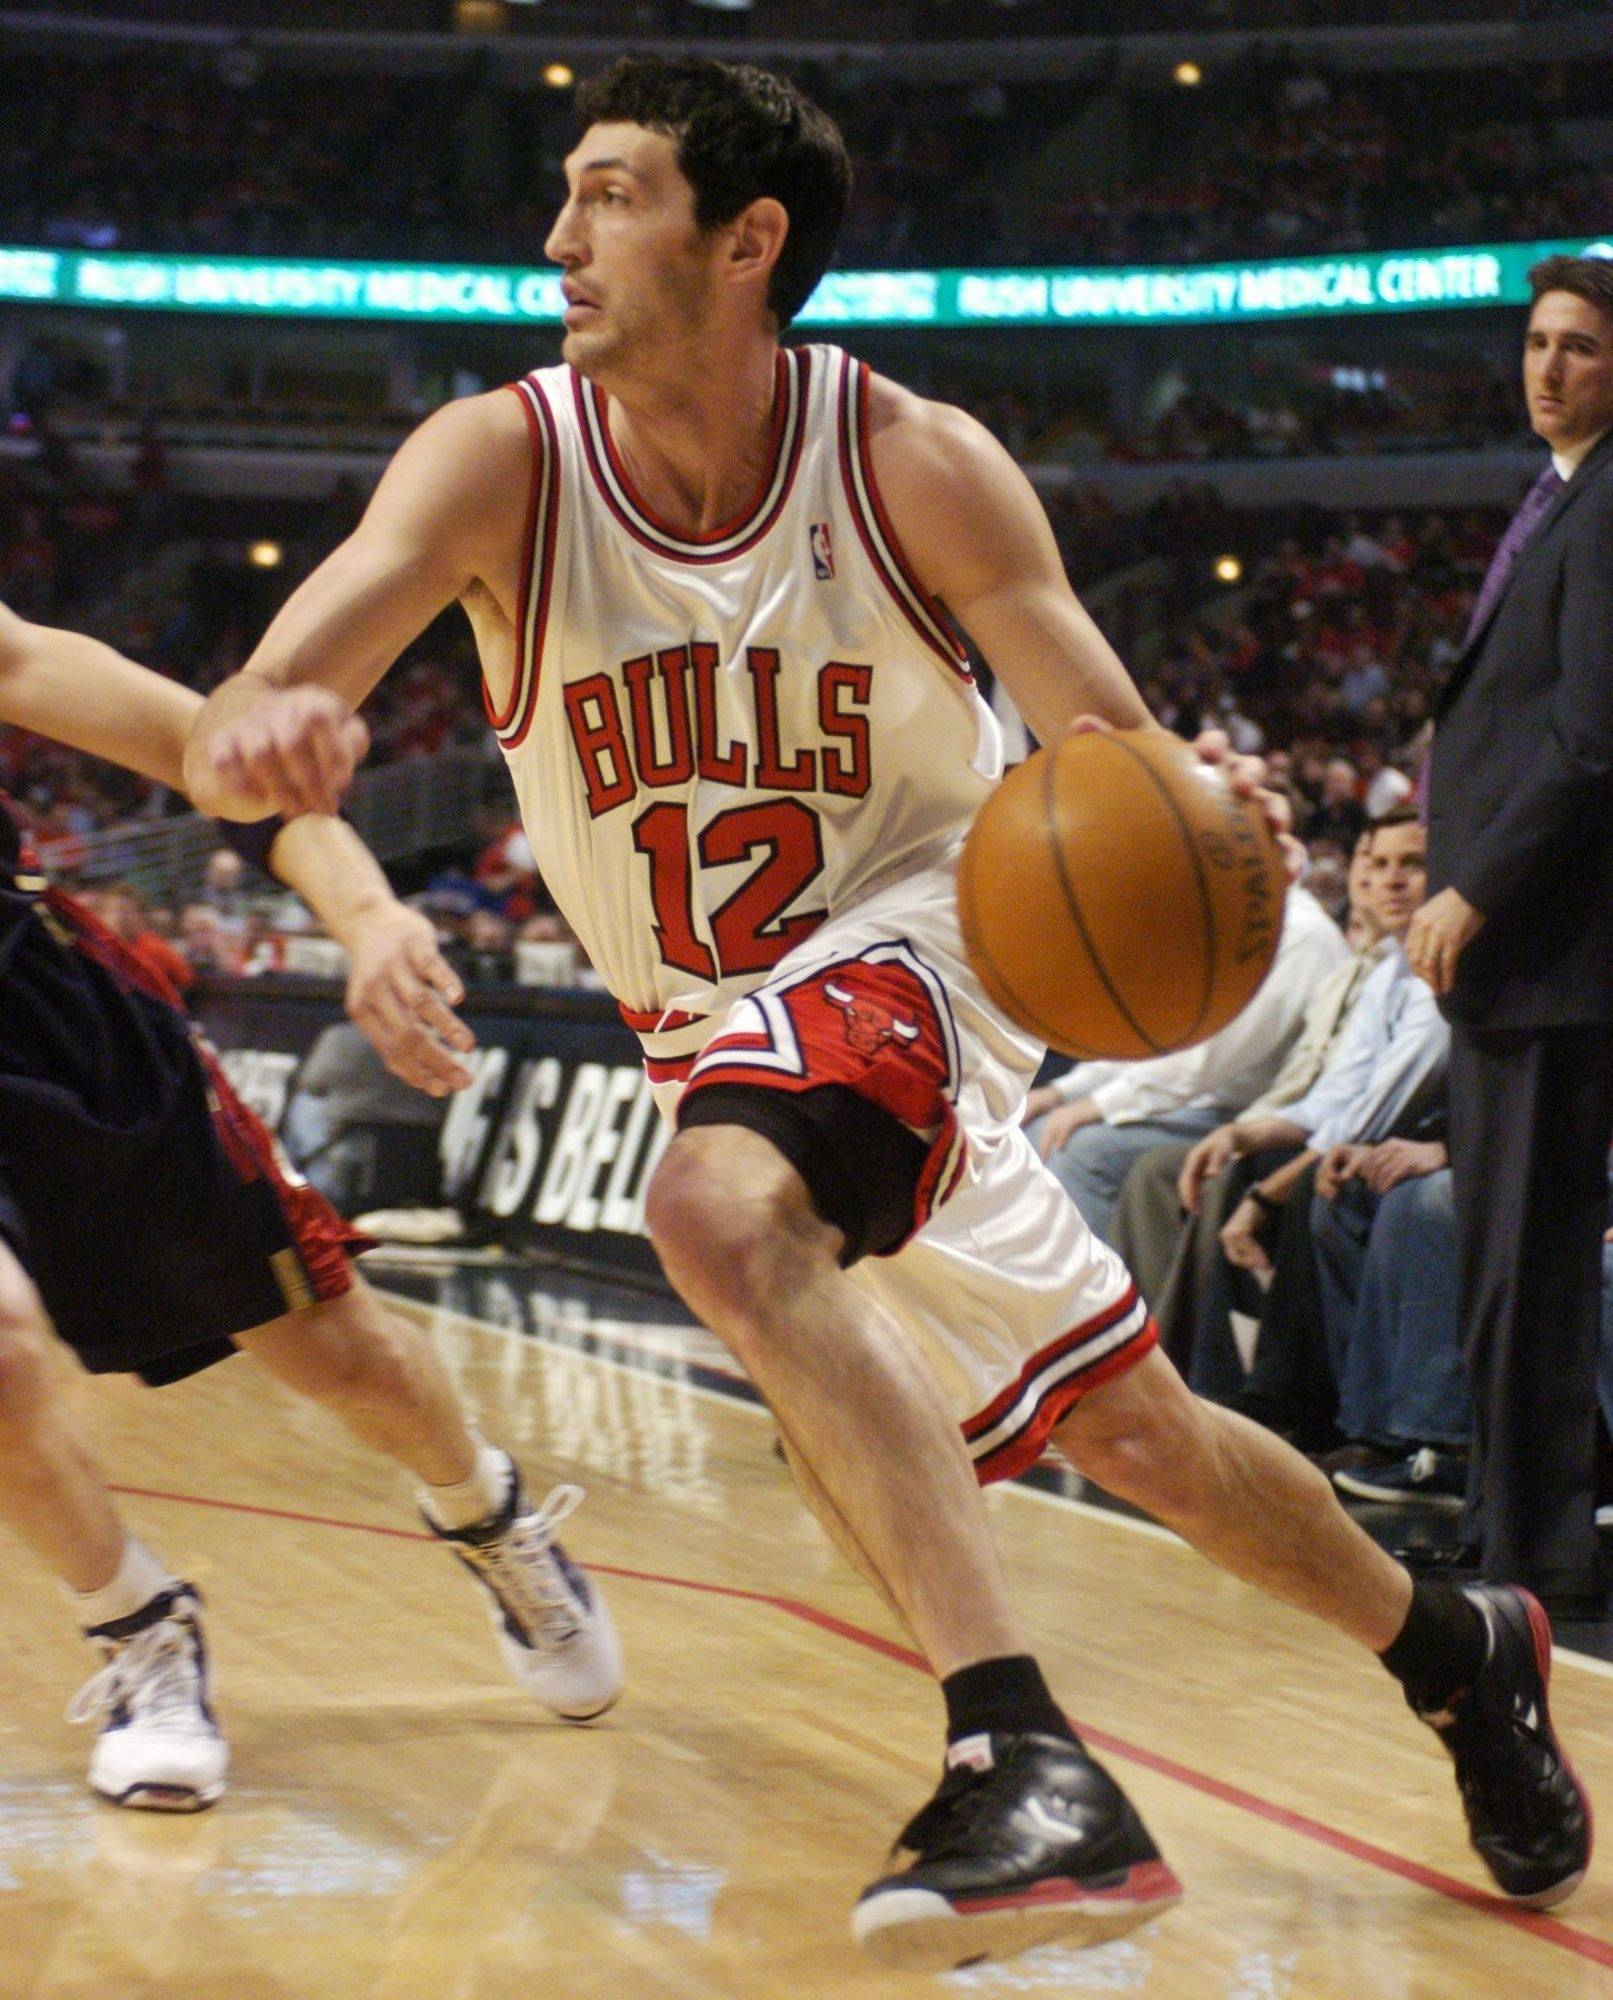 Kirk Hinrich of the Bulls drives along the baseline.